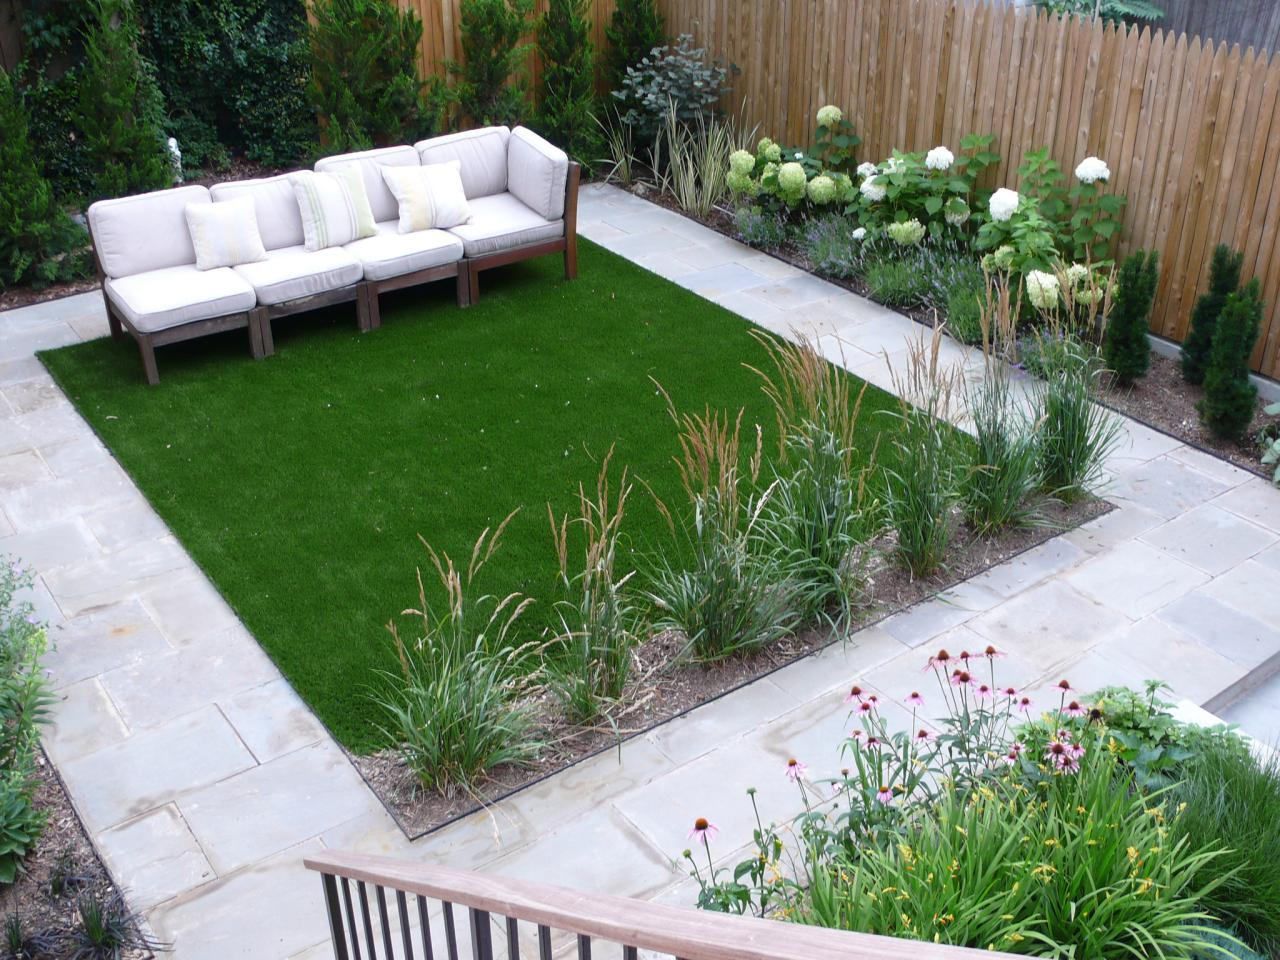 Low maintenance landscaping design ideas hgtv for Low maintenance garden design